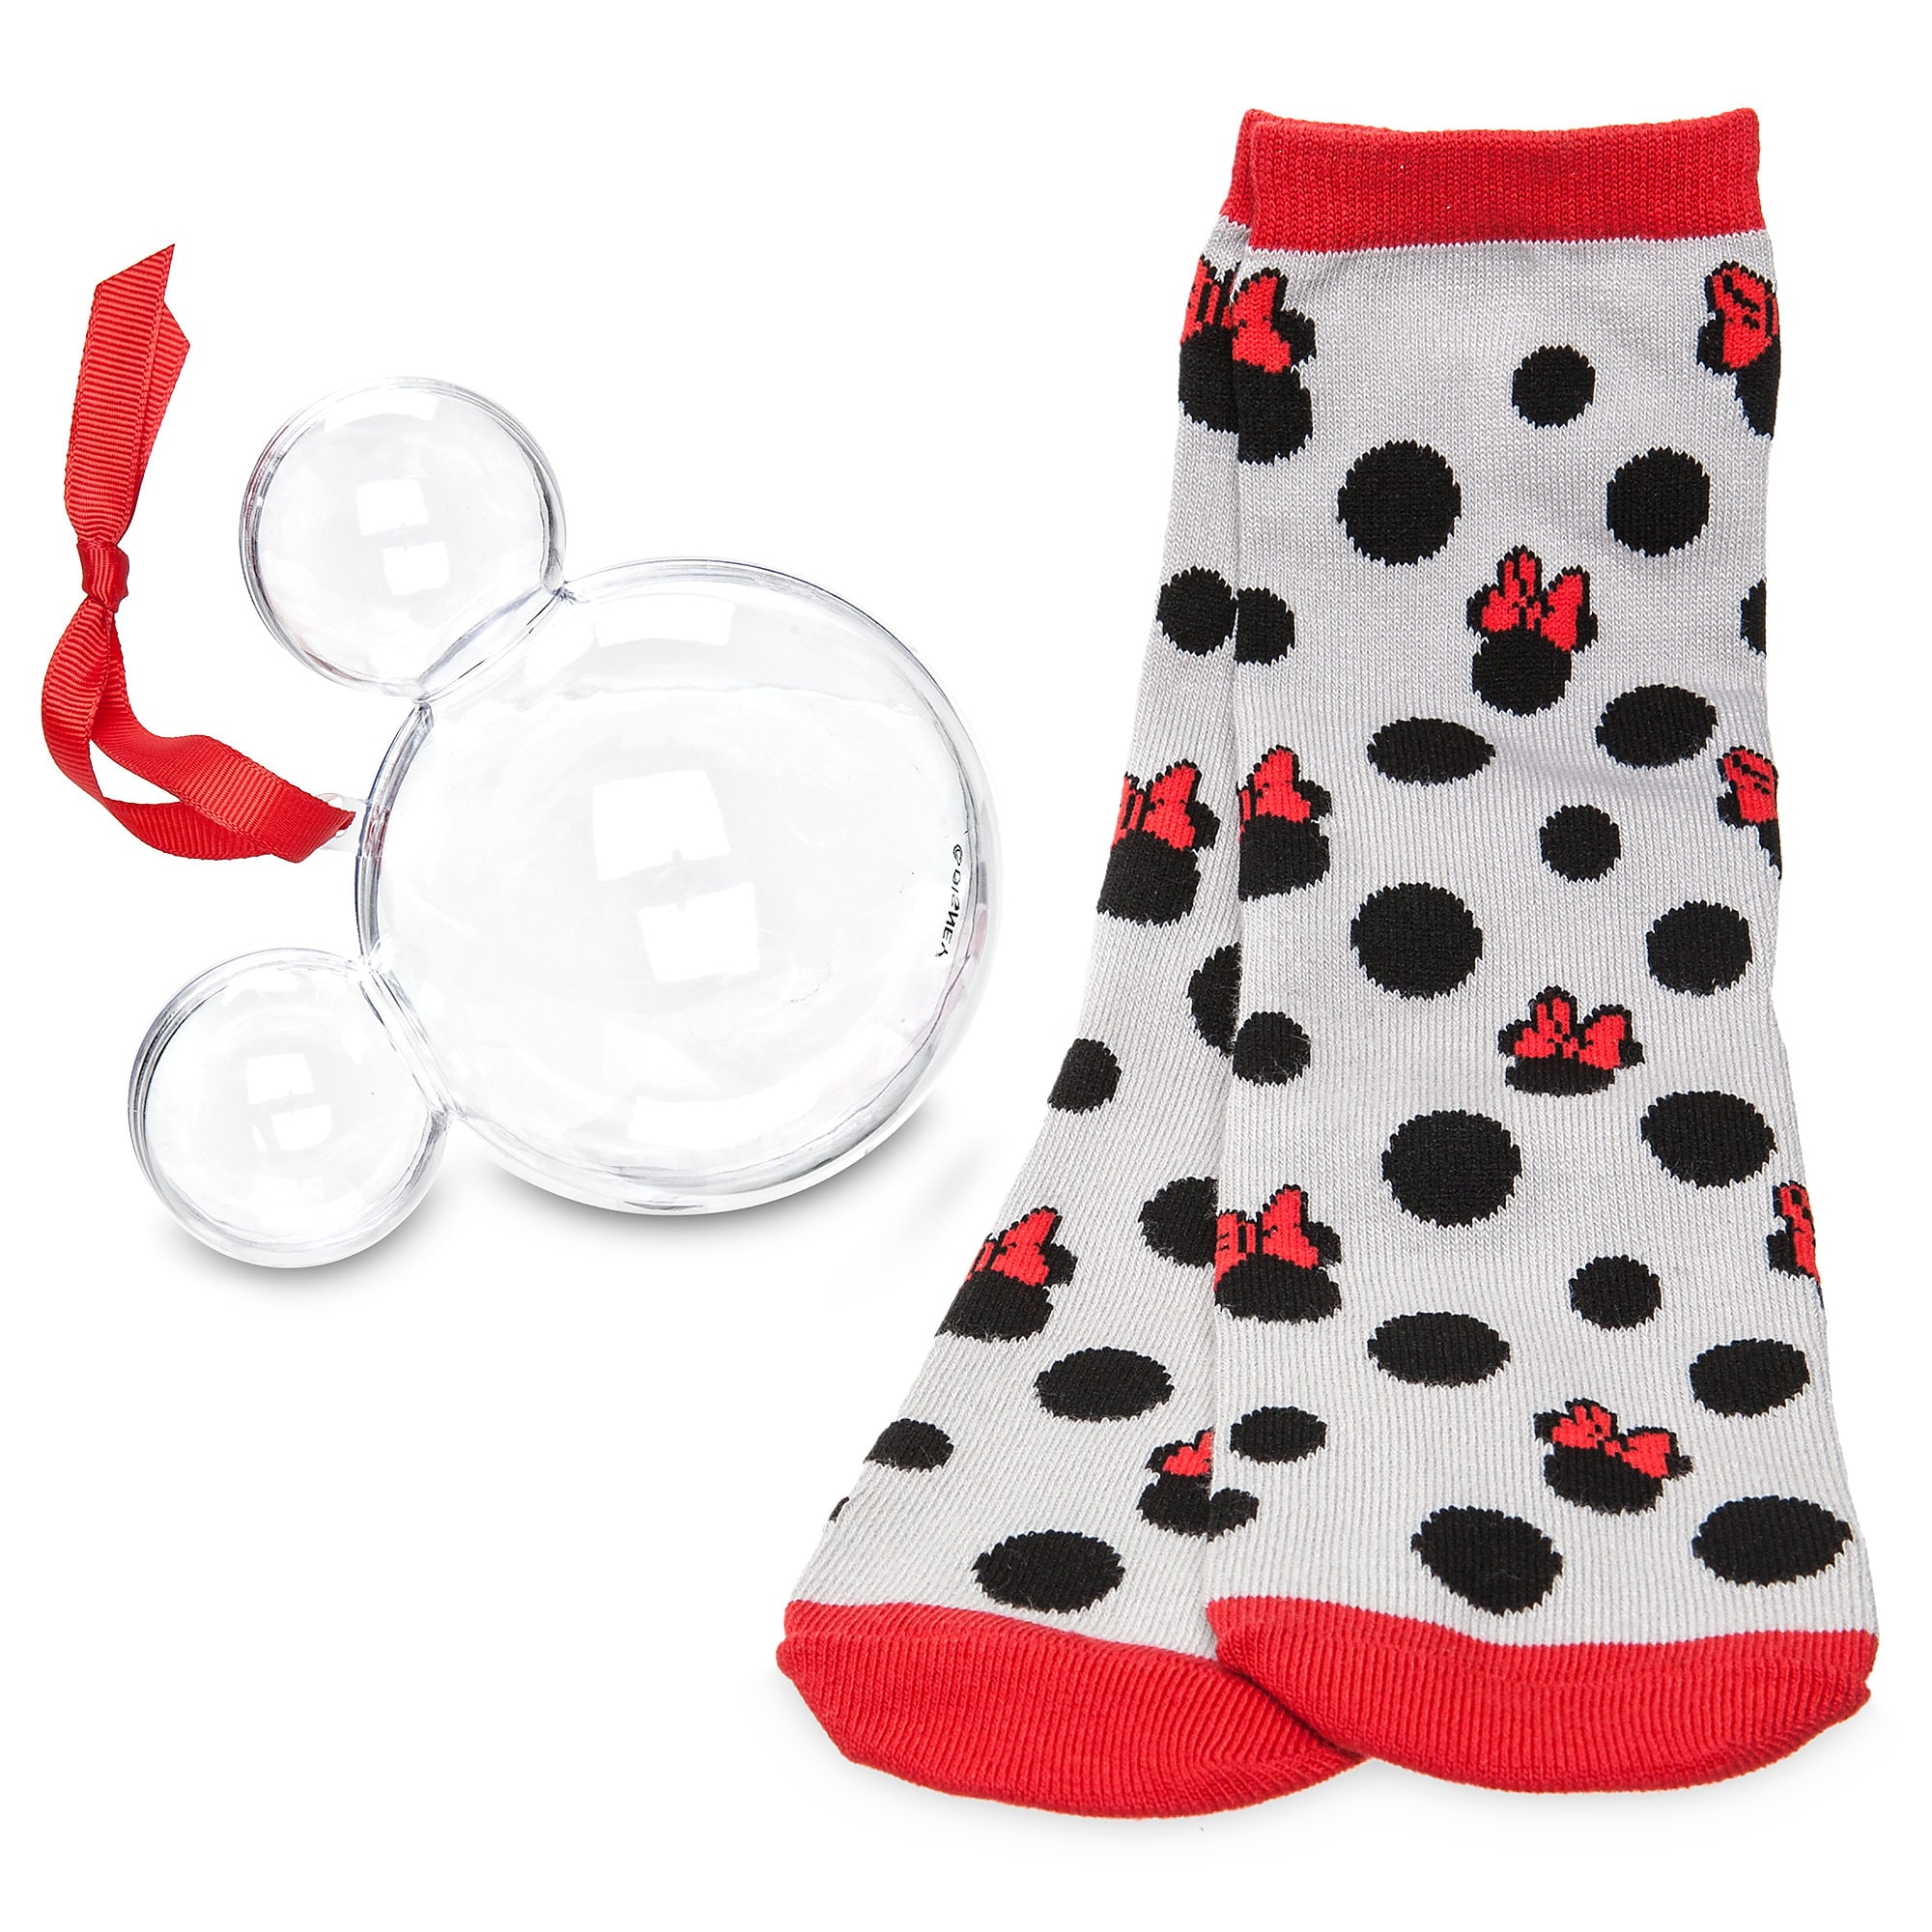 Minnie Mouse Socks in Ornament - Women